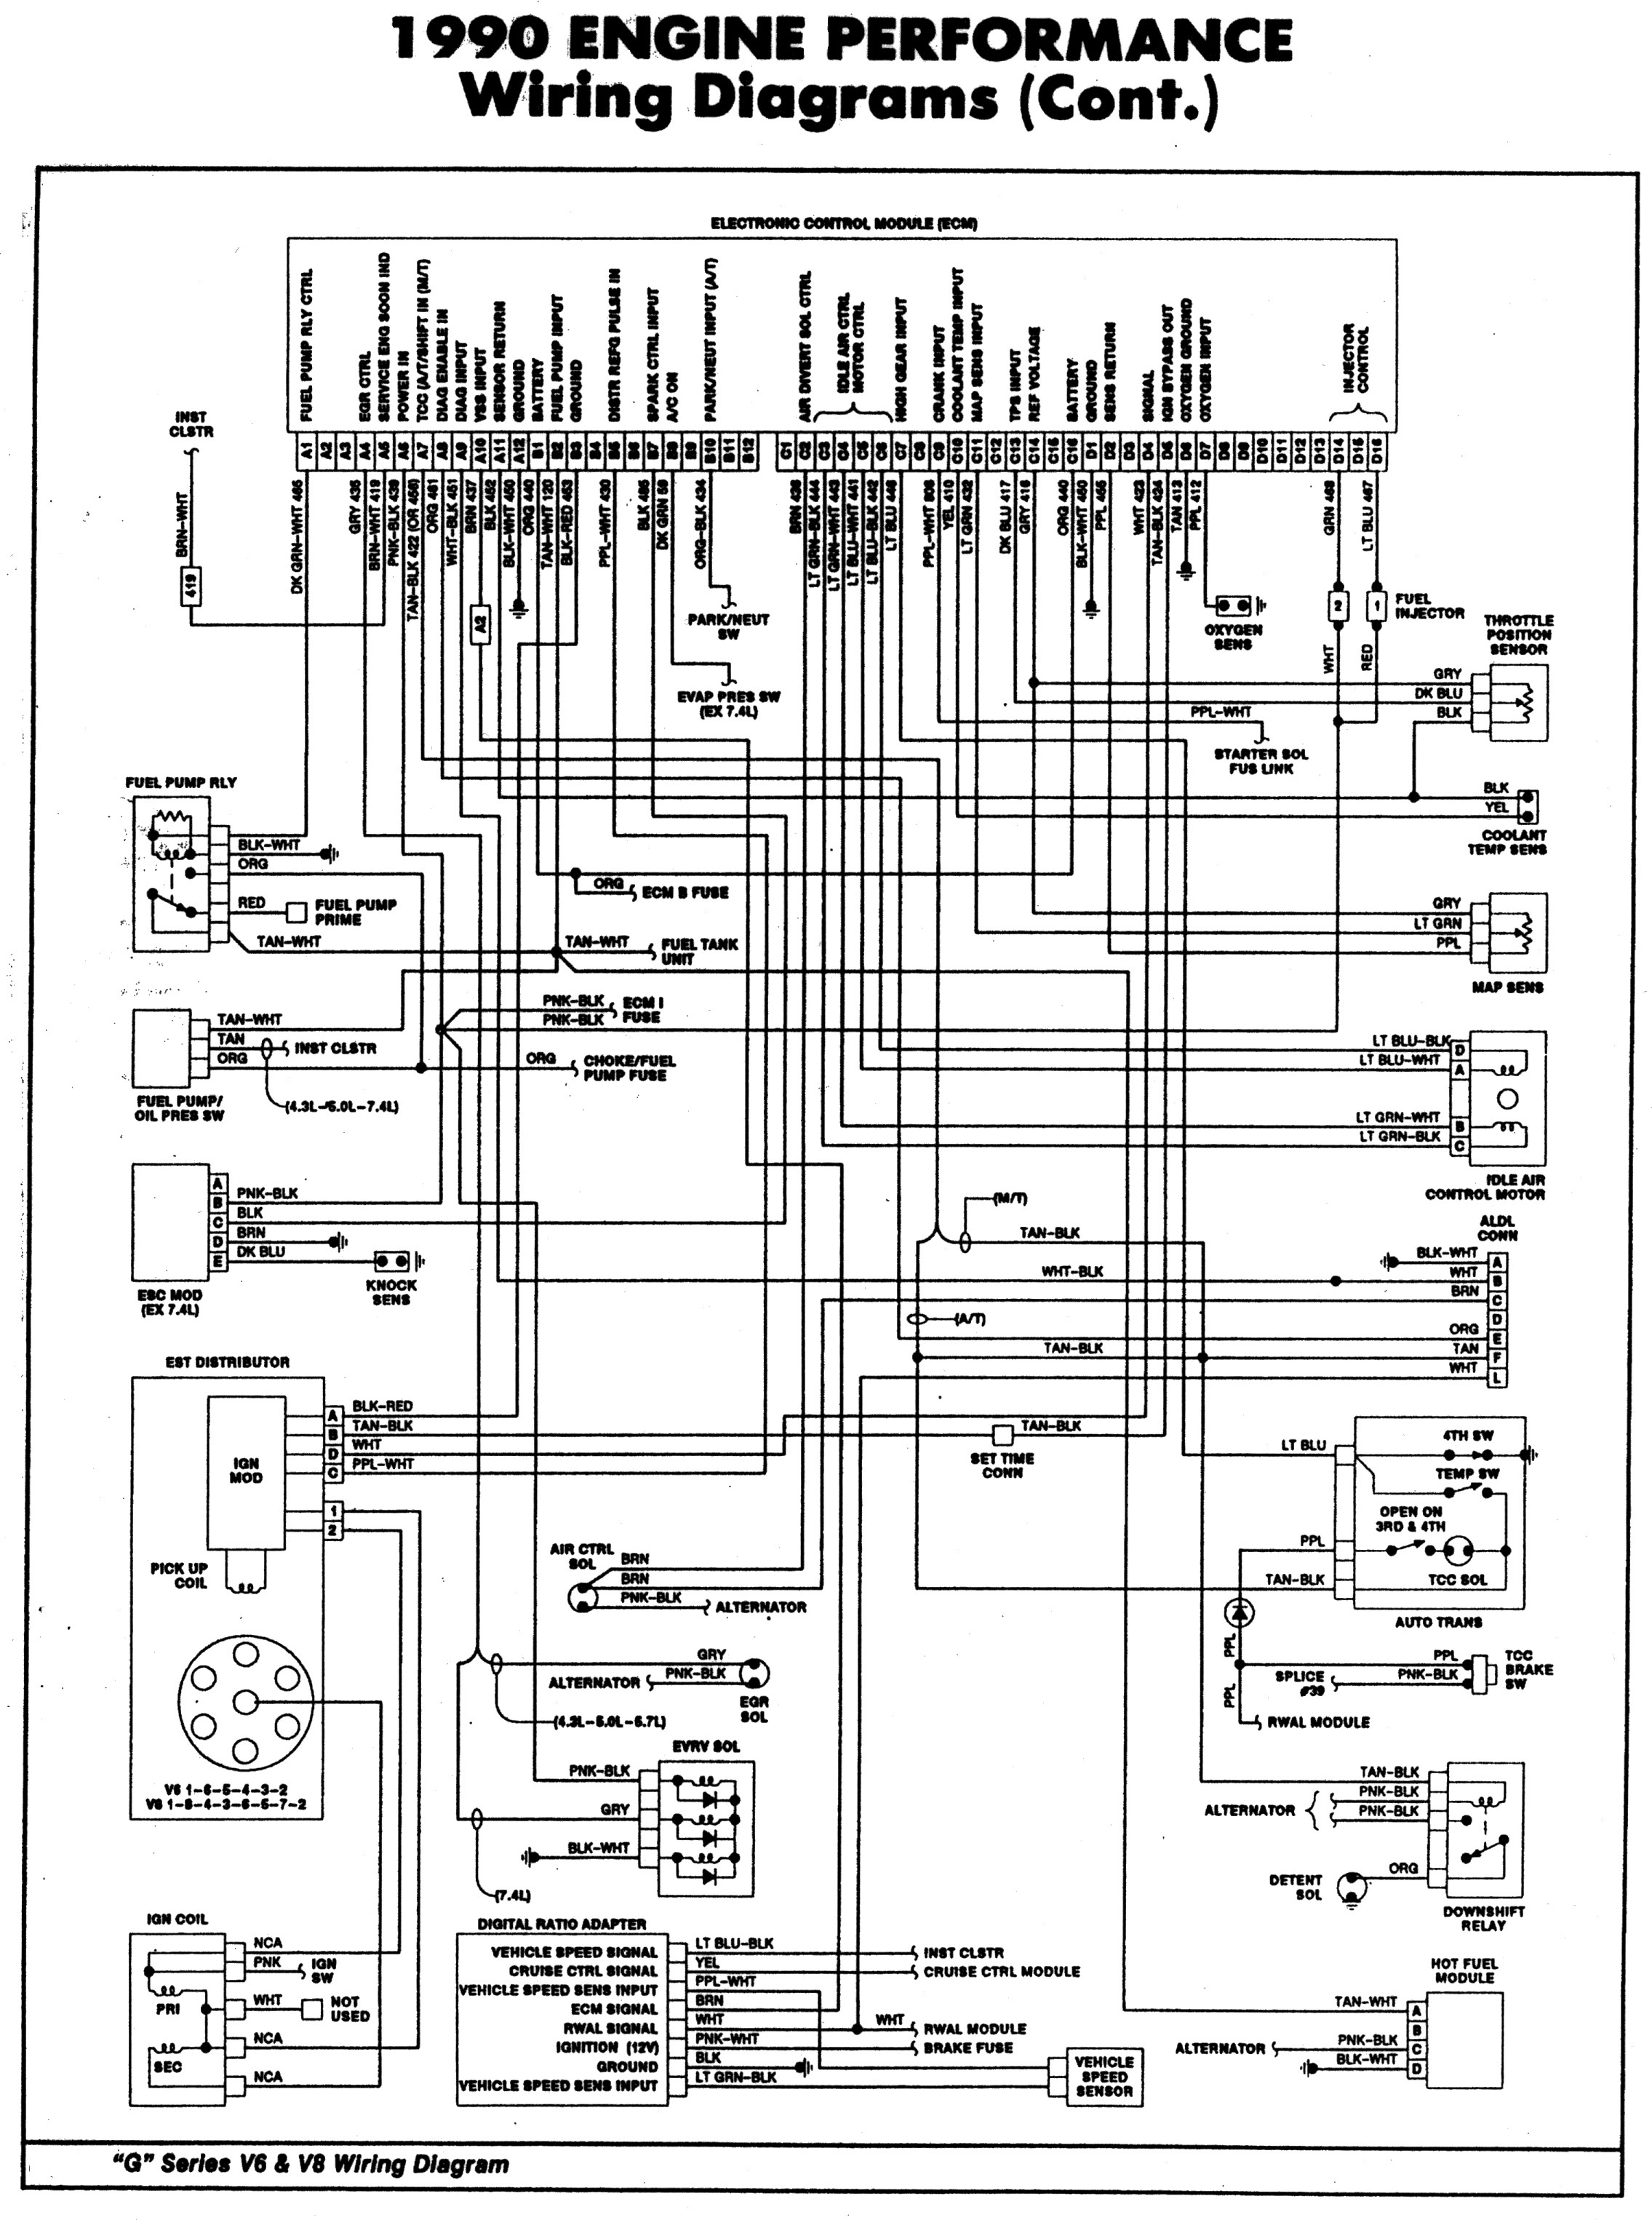 88 chevy van engine wiring wiring diagram forward1988 chevy van wiring diagram wiring diagram data today [ 2271 x 3051 Pixel ]